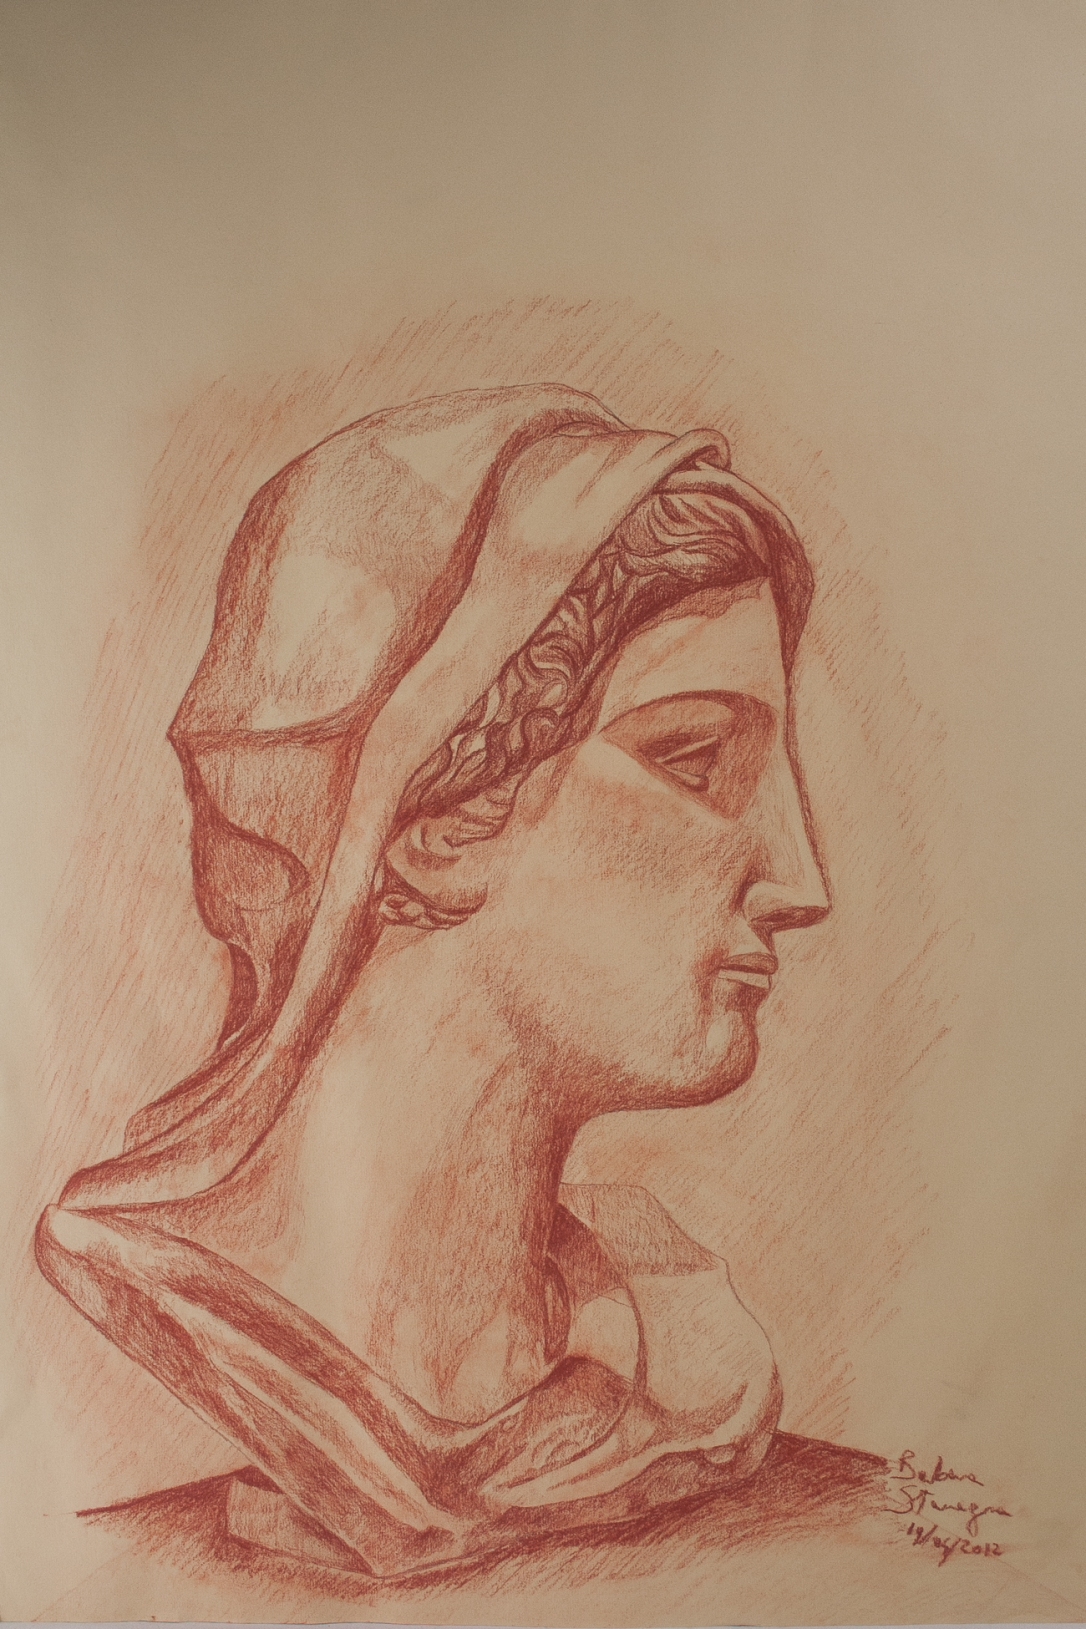 Sanguine drawing on paper representing a Roman bust